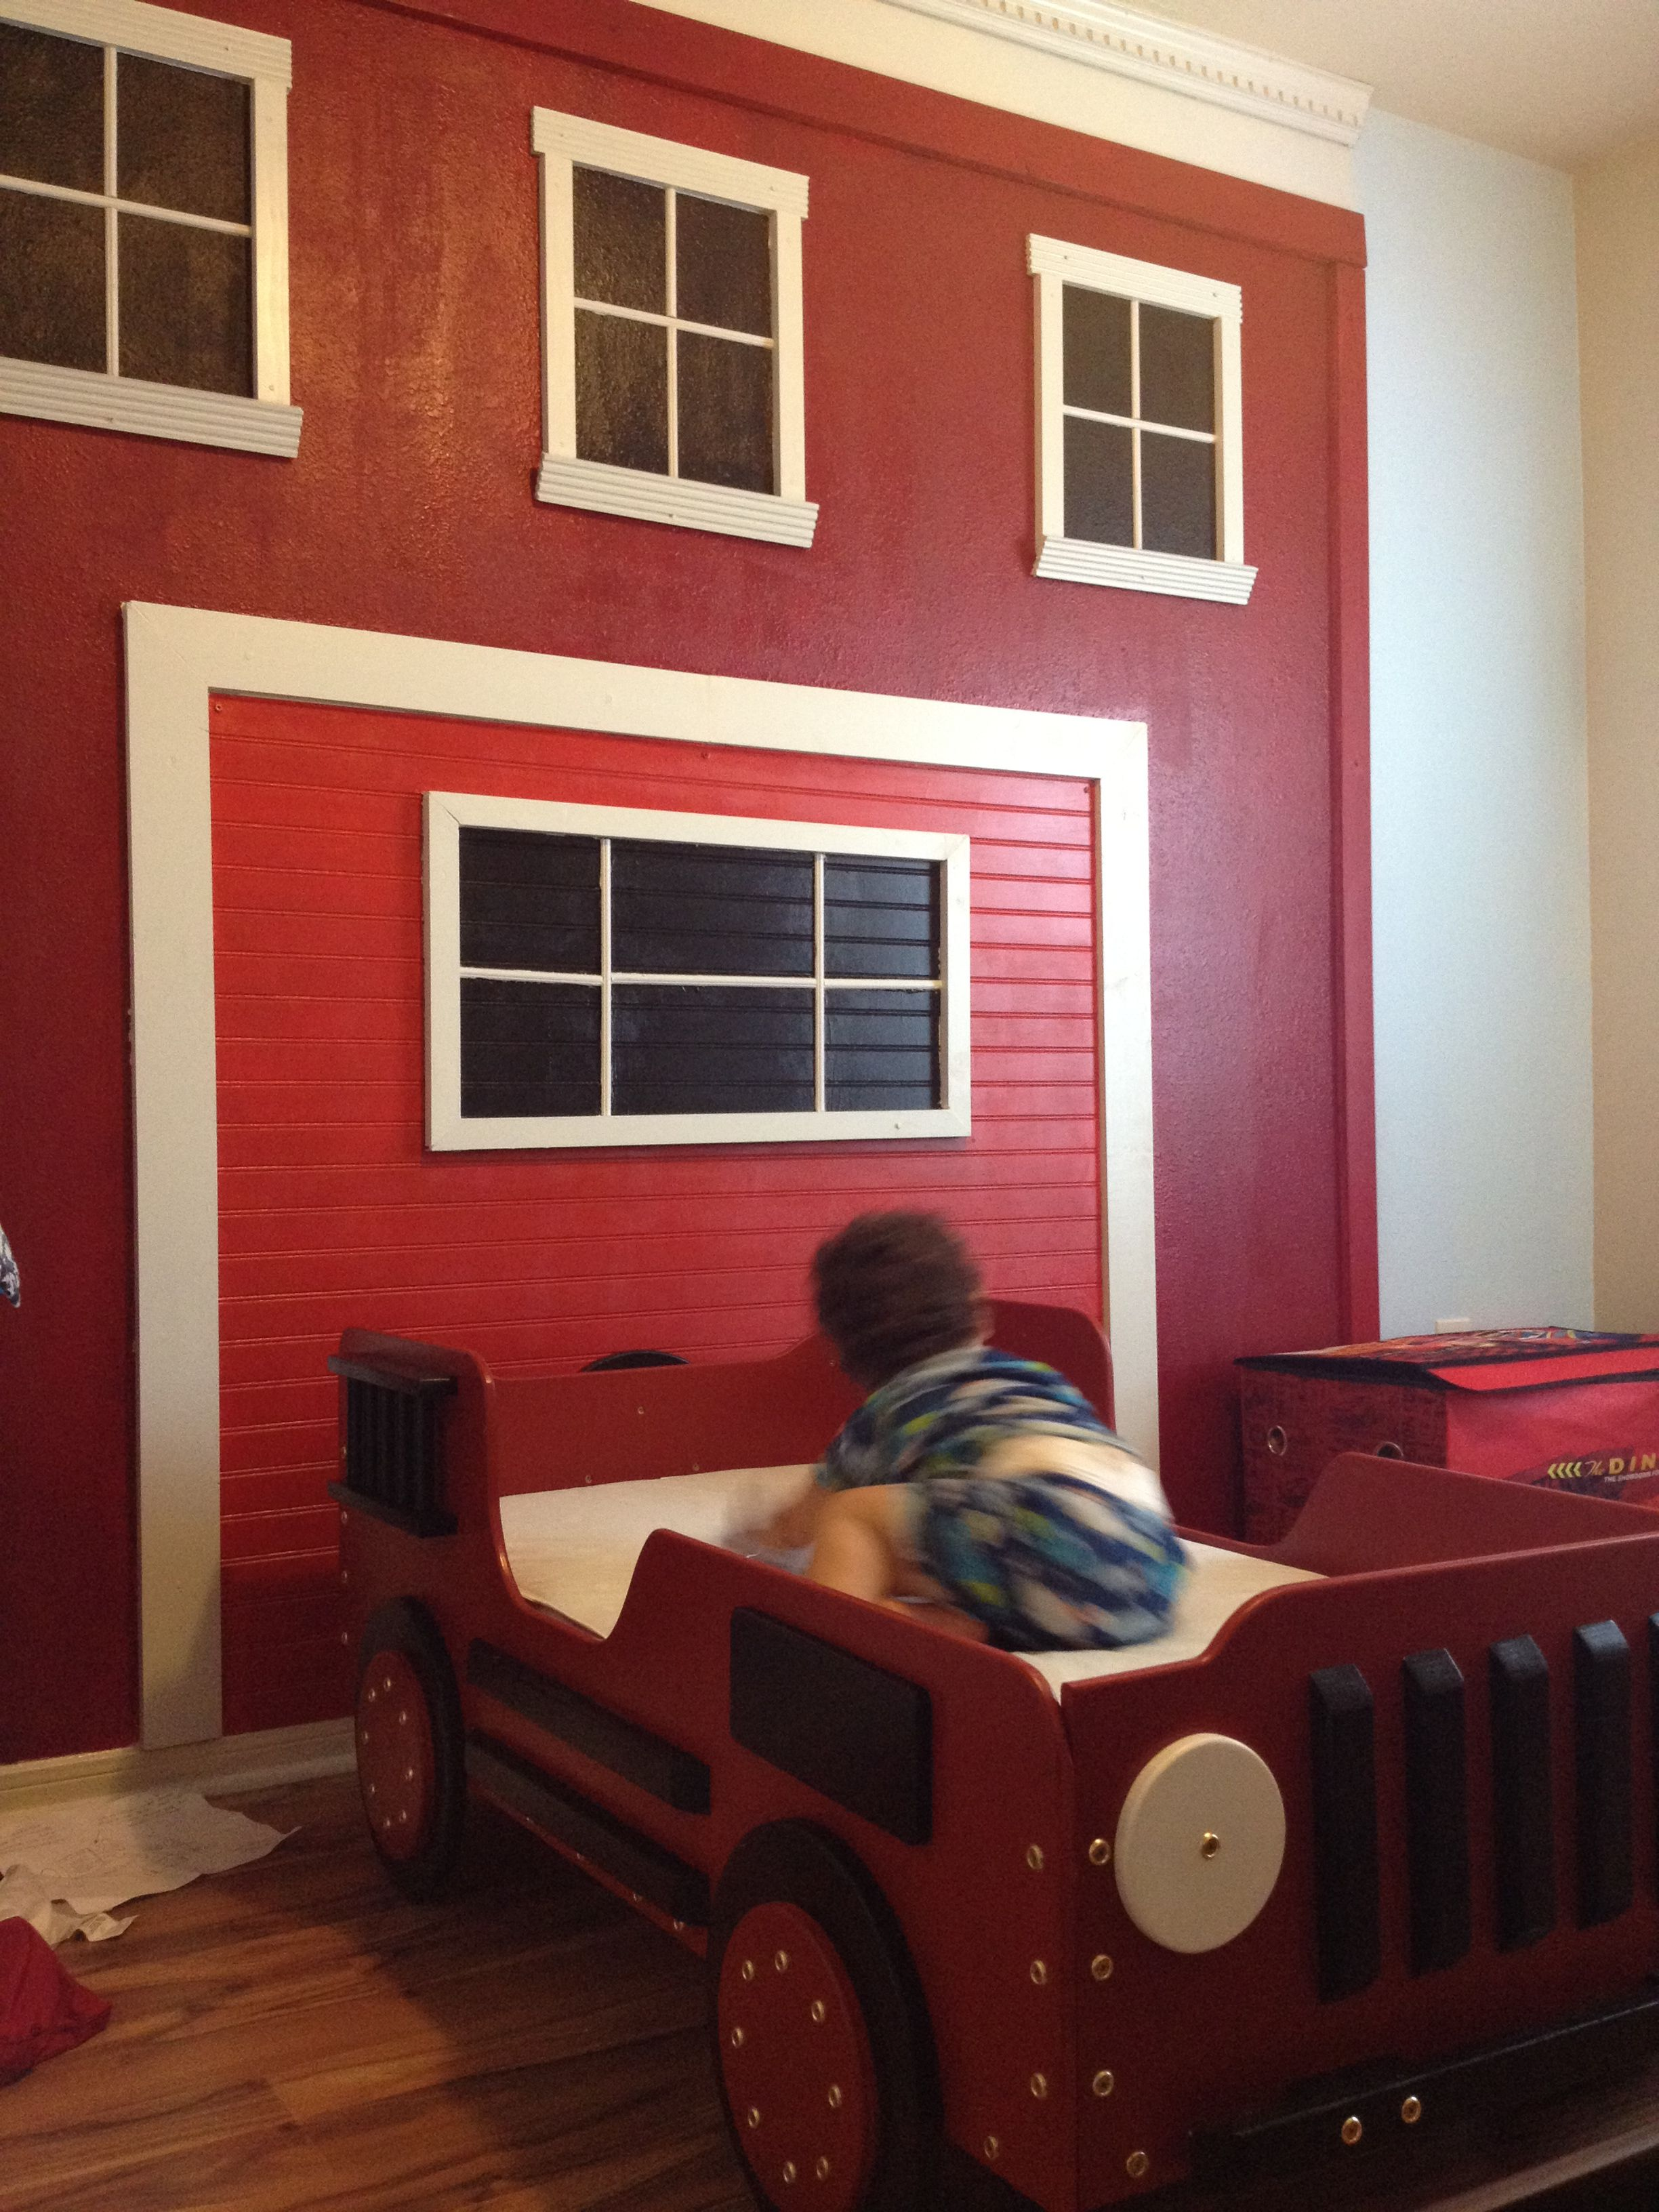 Fire Station Toddler Room Superhero Room Room